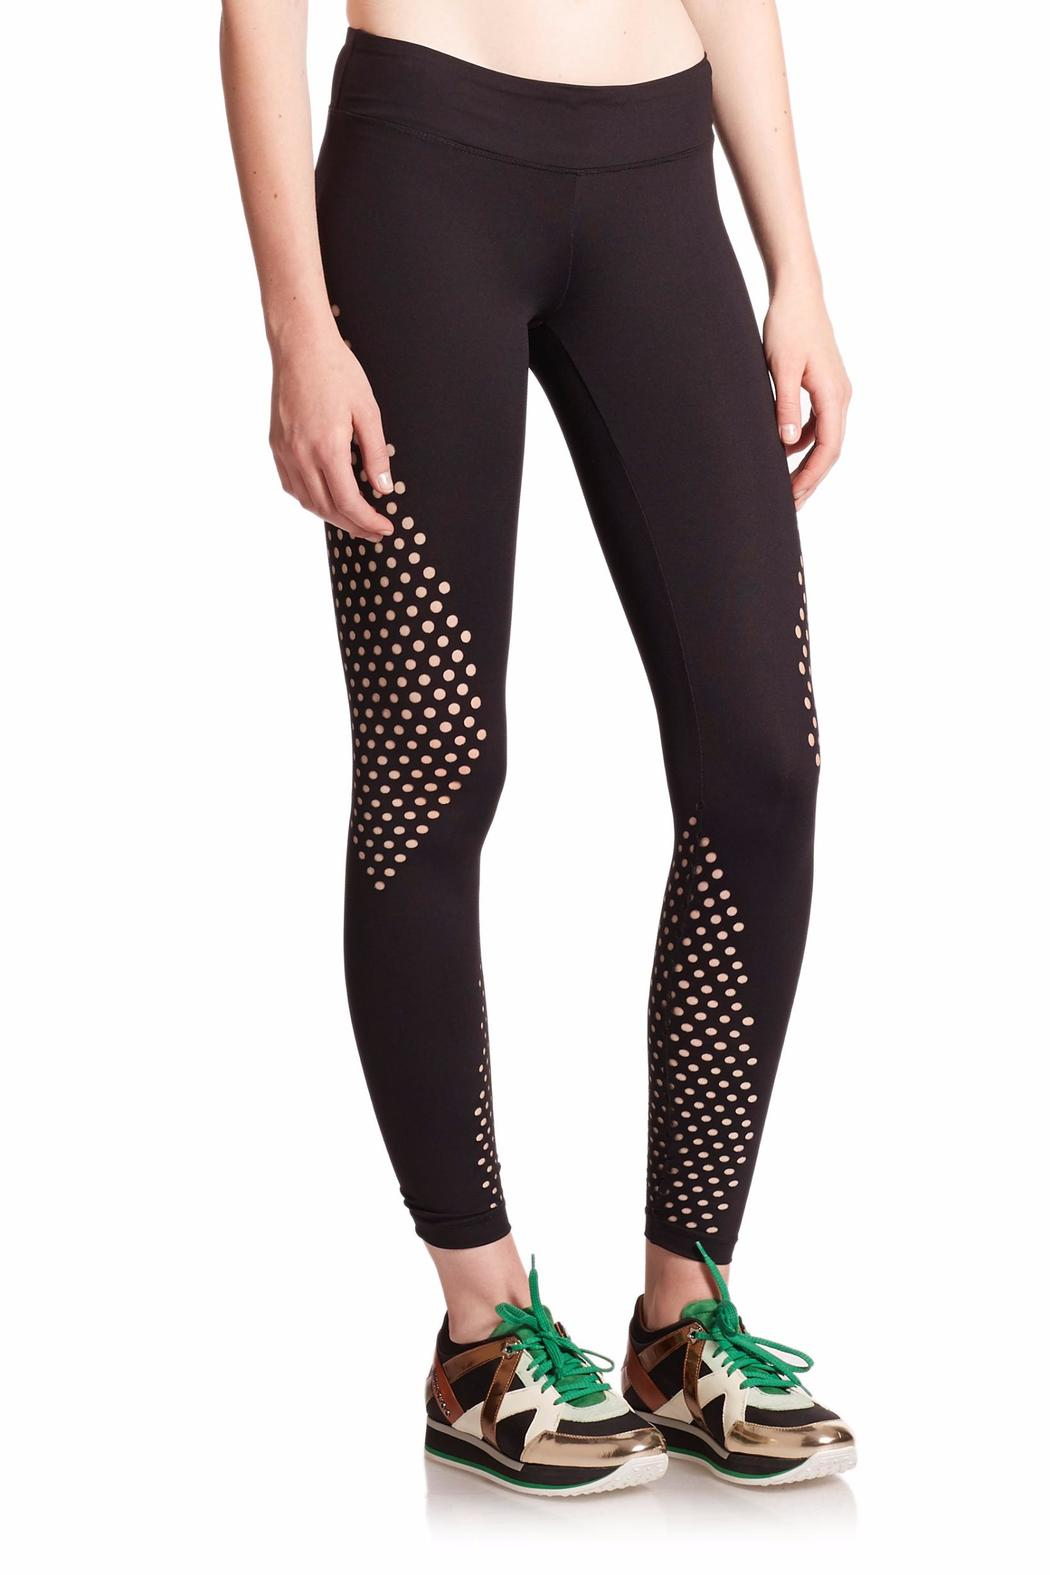 Koral Activewear Visage Cropped Legging From Omaha By Renu